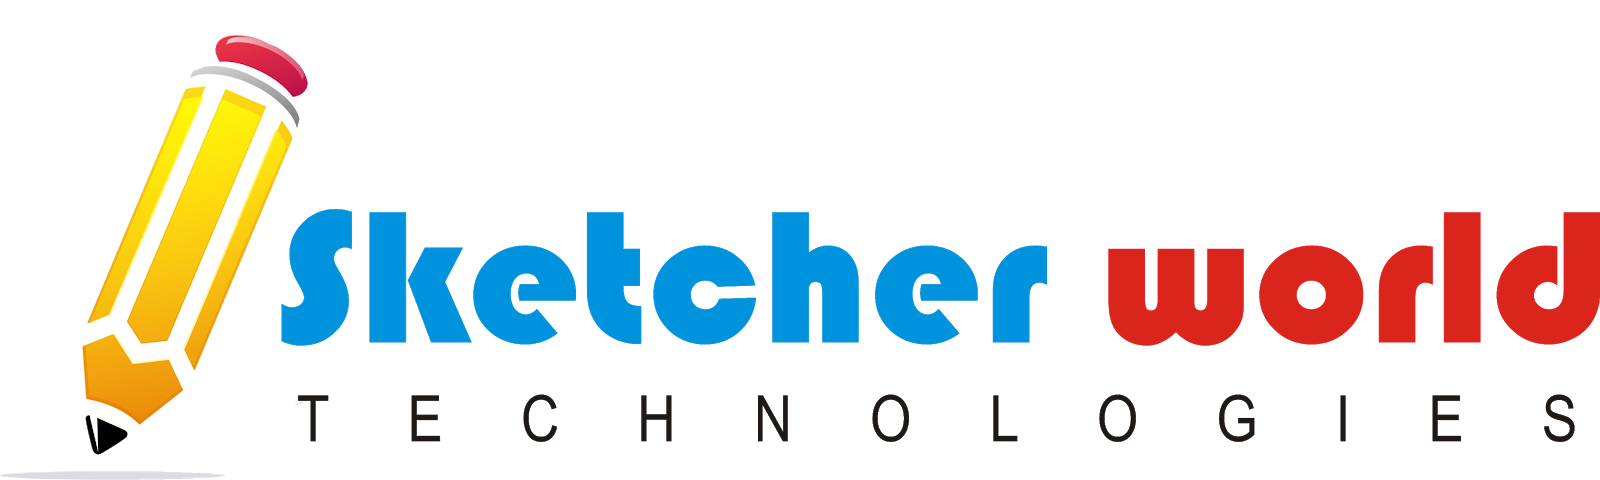 Sketcherworld Technologies